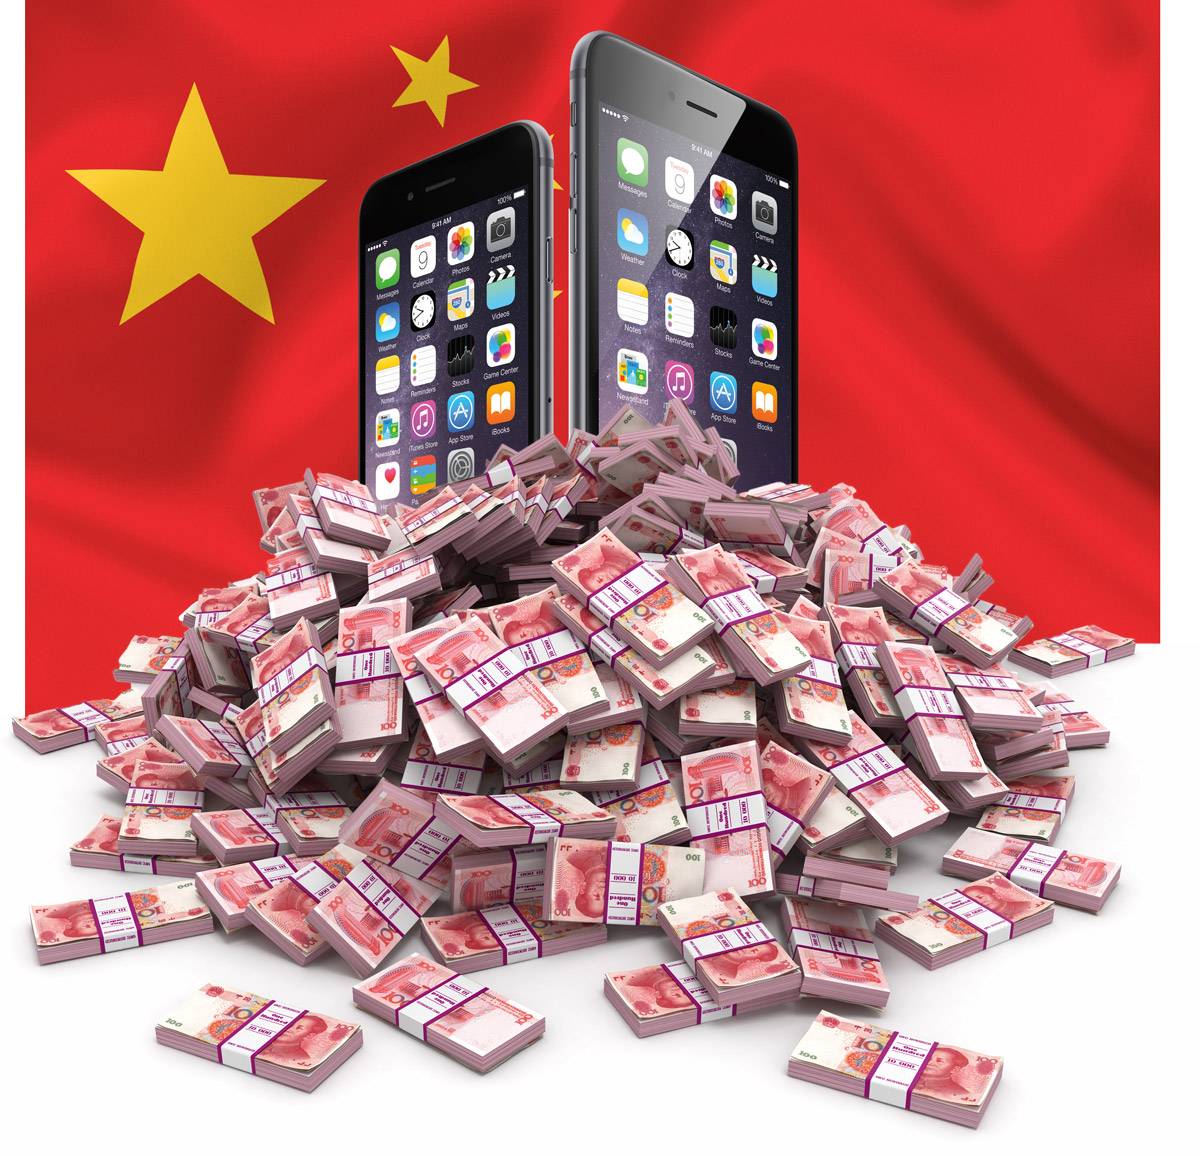 Chinese Flag, iPhones, Yuan